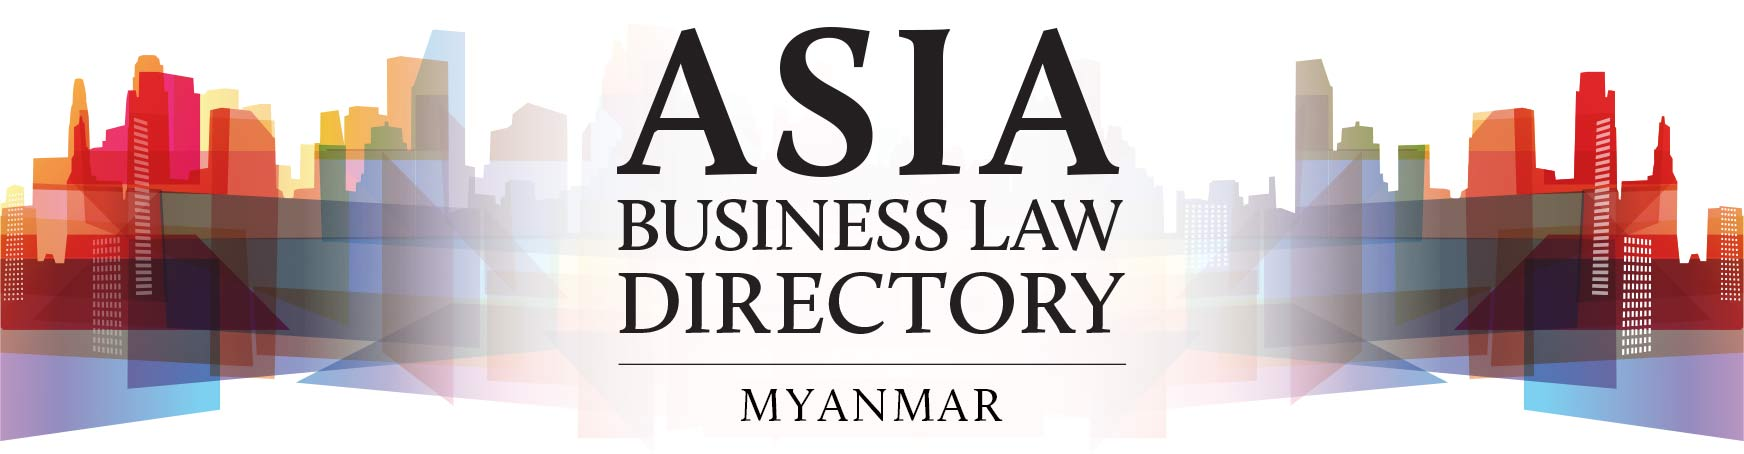 Myanmar-law-firms---Directory-2019---Asia-Business-Law-Journal